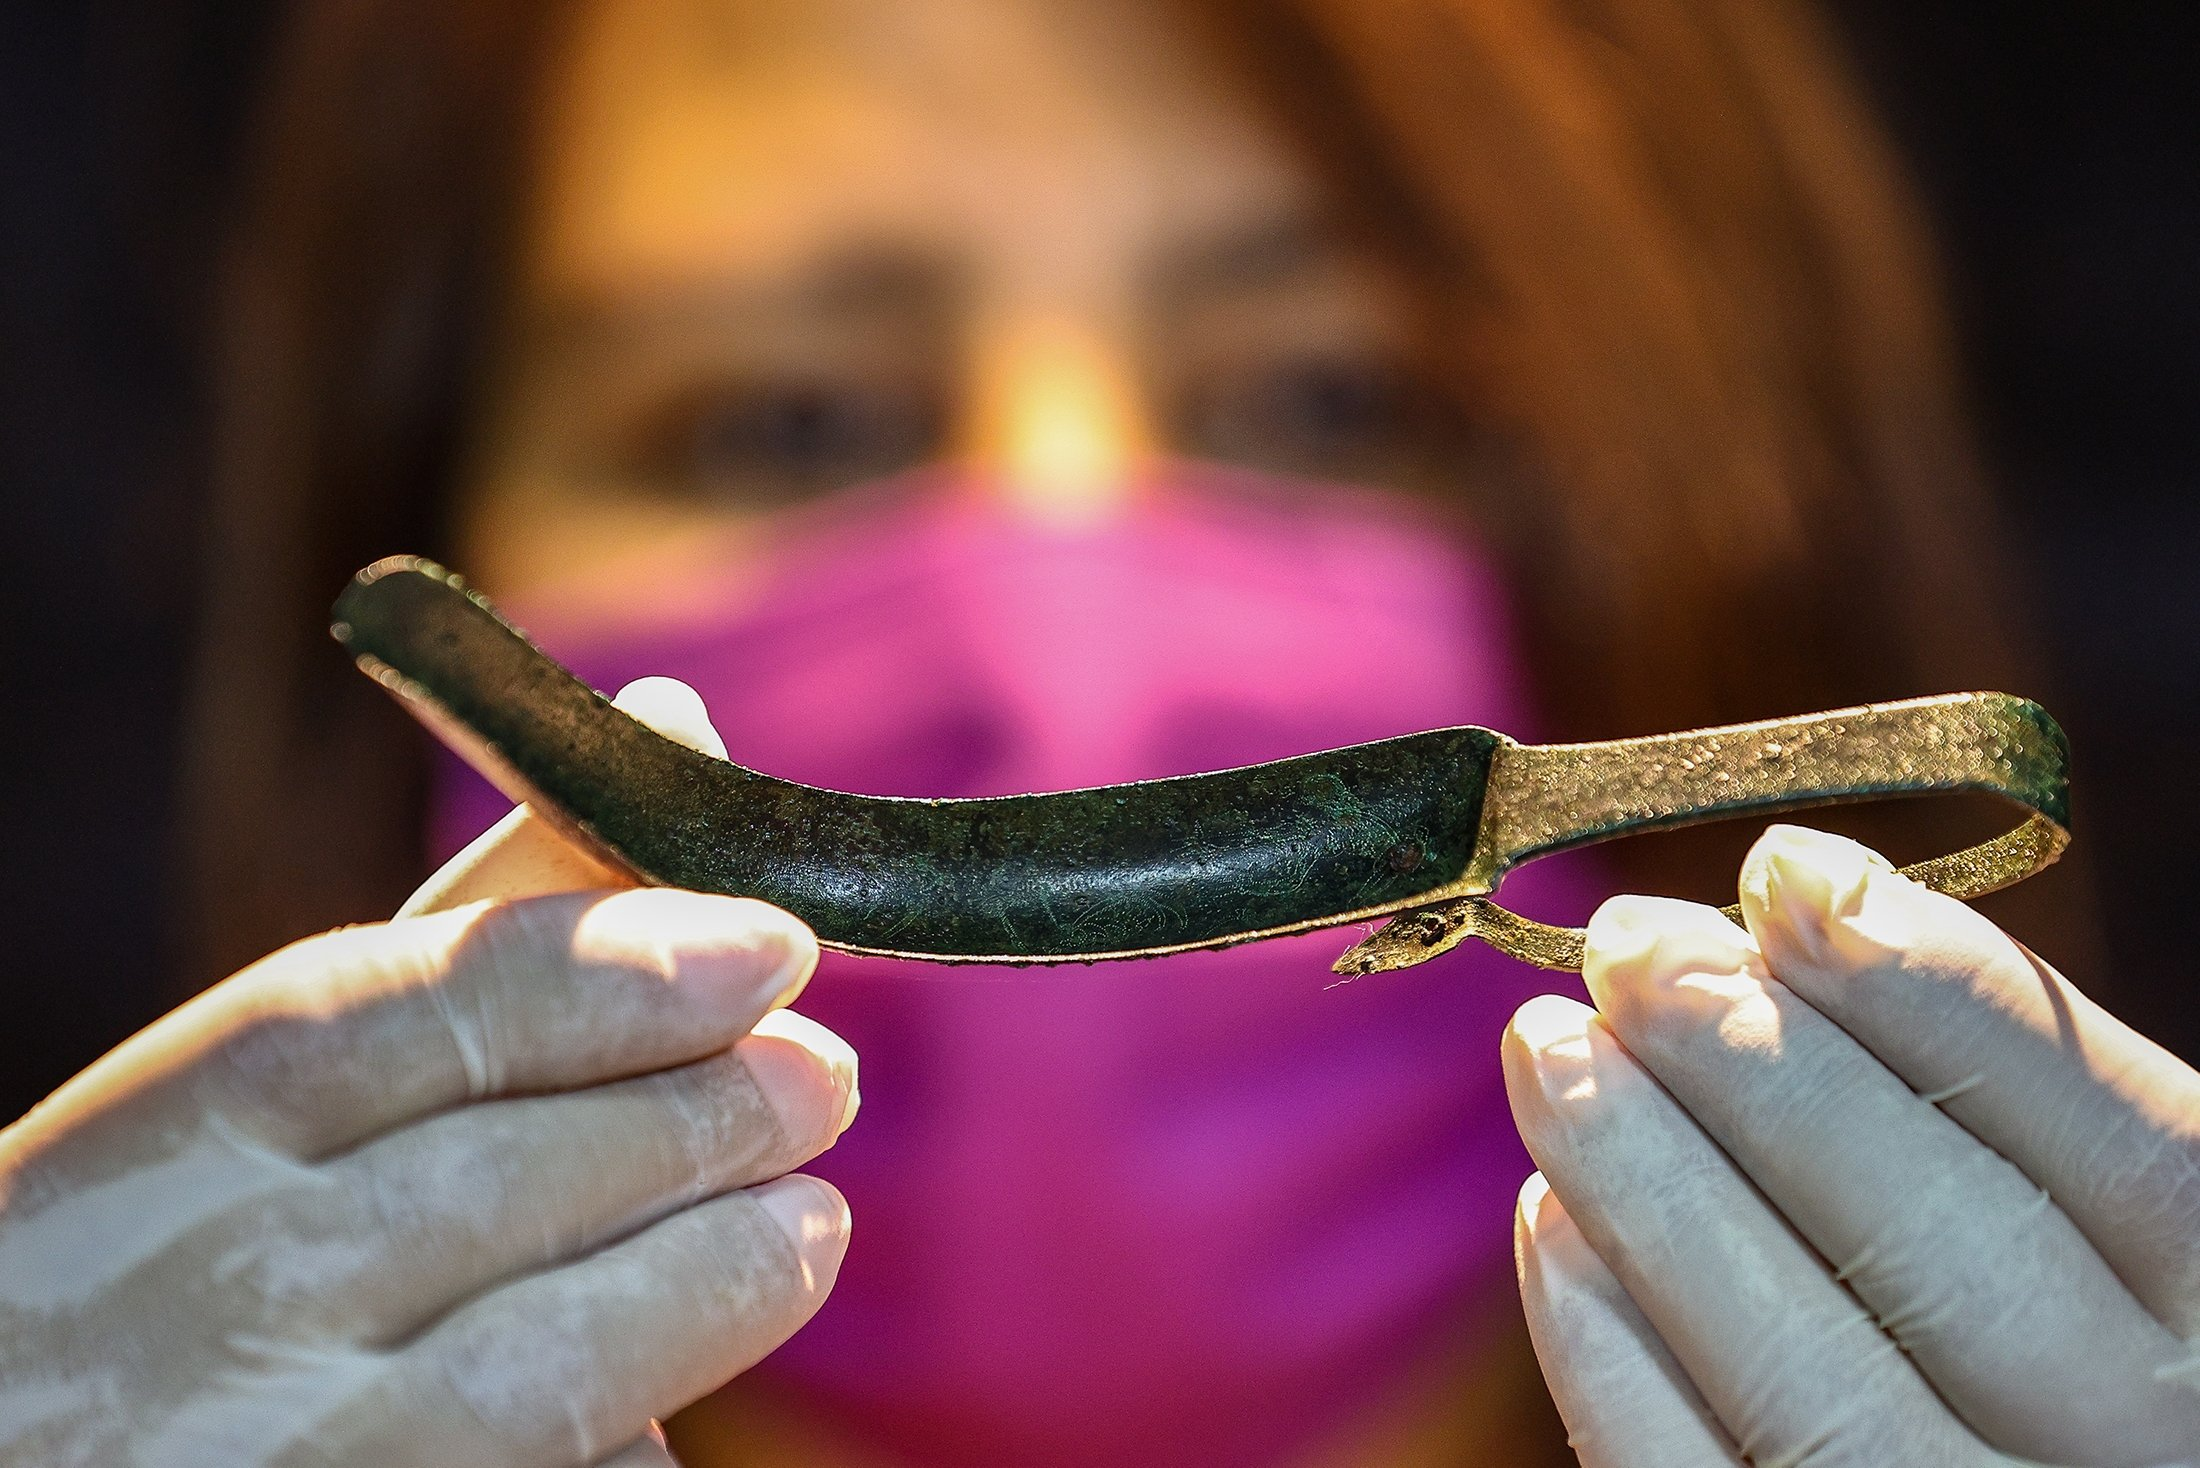 """An official presents the ancient artifact known as a """"strigil,"""" a historical tool used for cleansing gladiators, on exhibition at Izmir Archaeological Museum in Izmir, Turkey, July 15, 2021. (AA Photo)"""